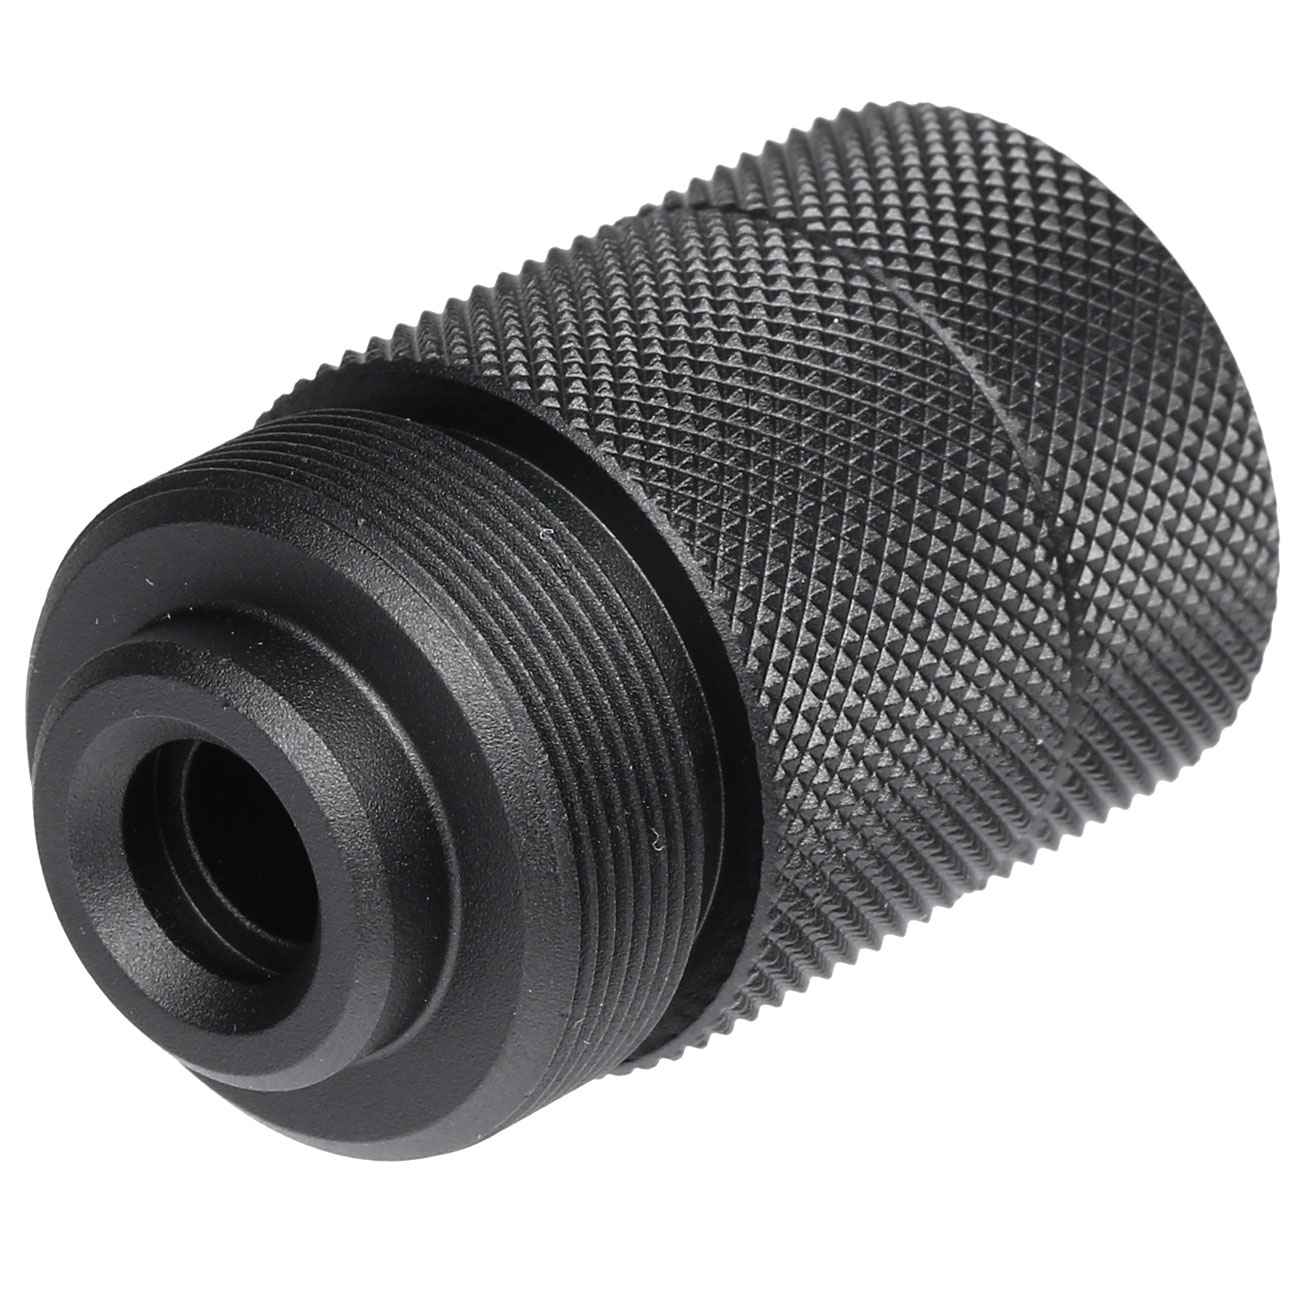 Action Army Barrel Extension / Silencer Adapter Type-A 14mm- schwarz f. AAC T10 Gewehre 2